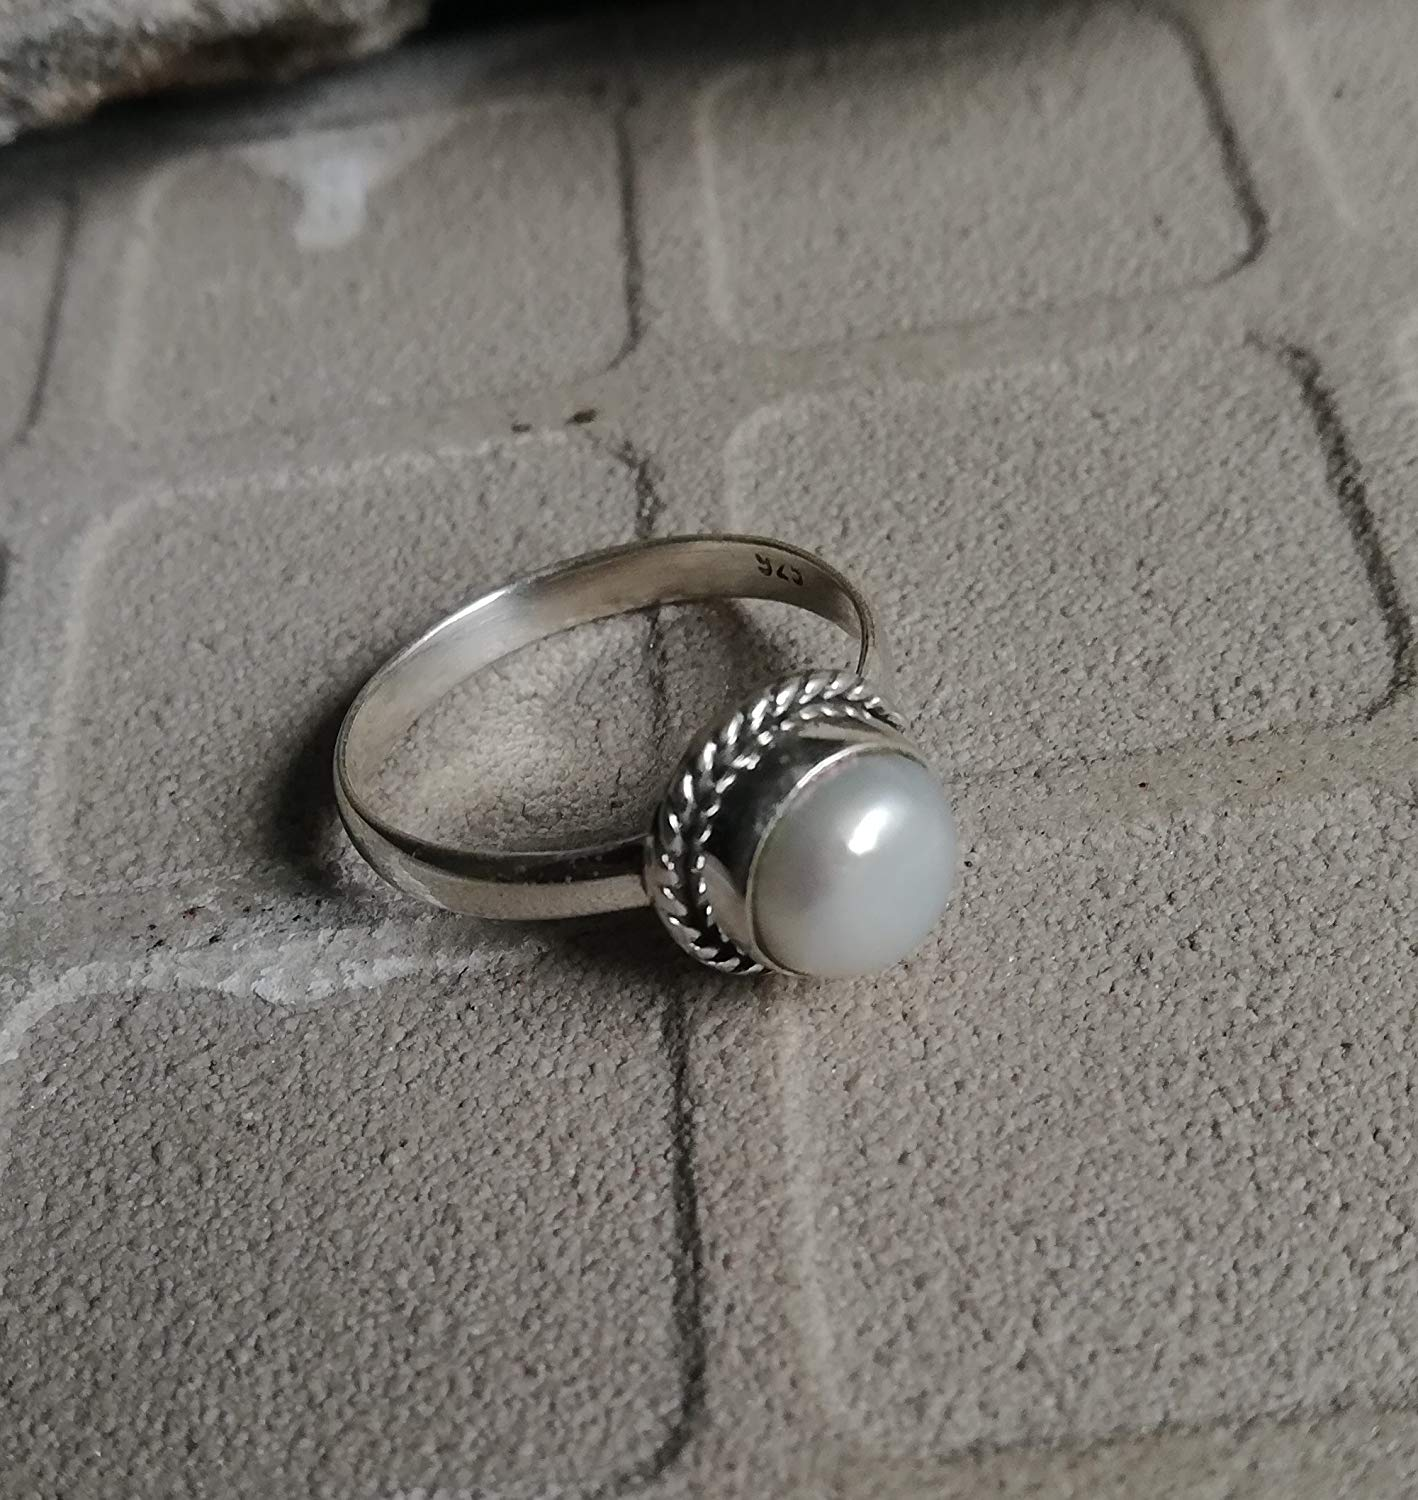 Pearl Ring, 925 Sterling Silver, Minimalist Ring, One Of A Kind, Ocean Ring, Ethnic Ring, Fresh Water Pearl Ring, Love Ring, Attractive Ring, Dainty Ring, Natural Ring, Great Gift, US All Size Ring